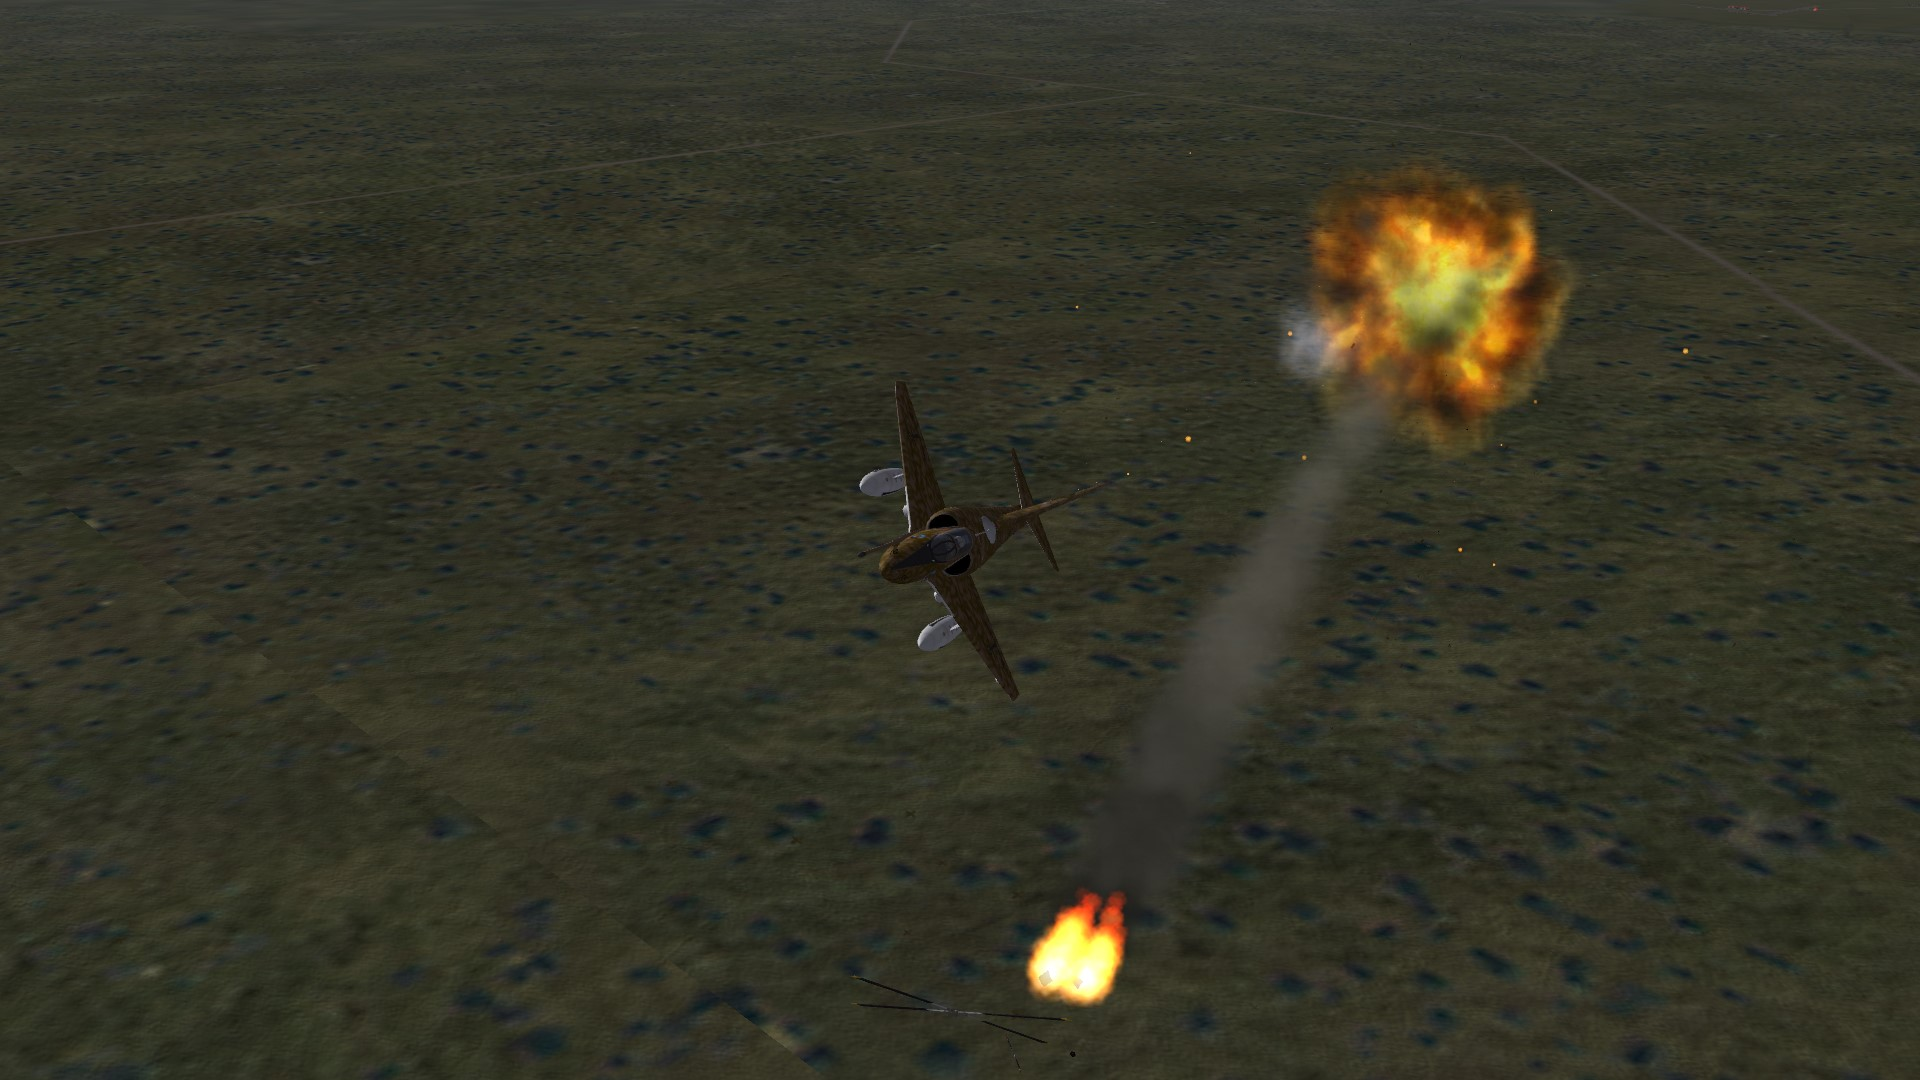 A4Q Skyhawk downing a Wessex met on the way home